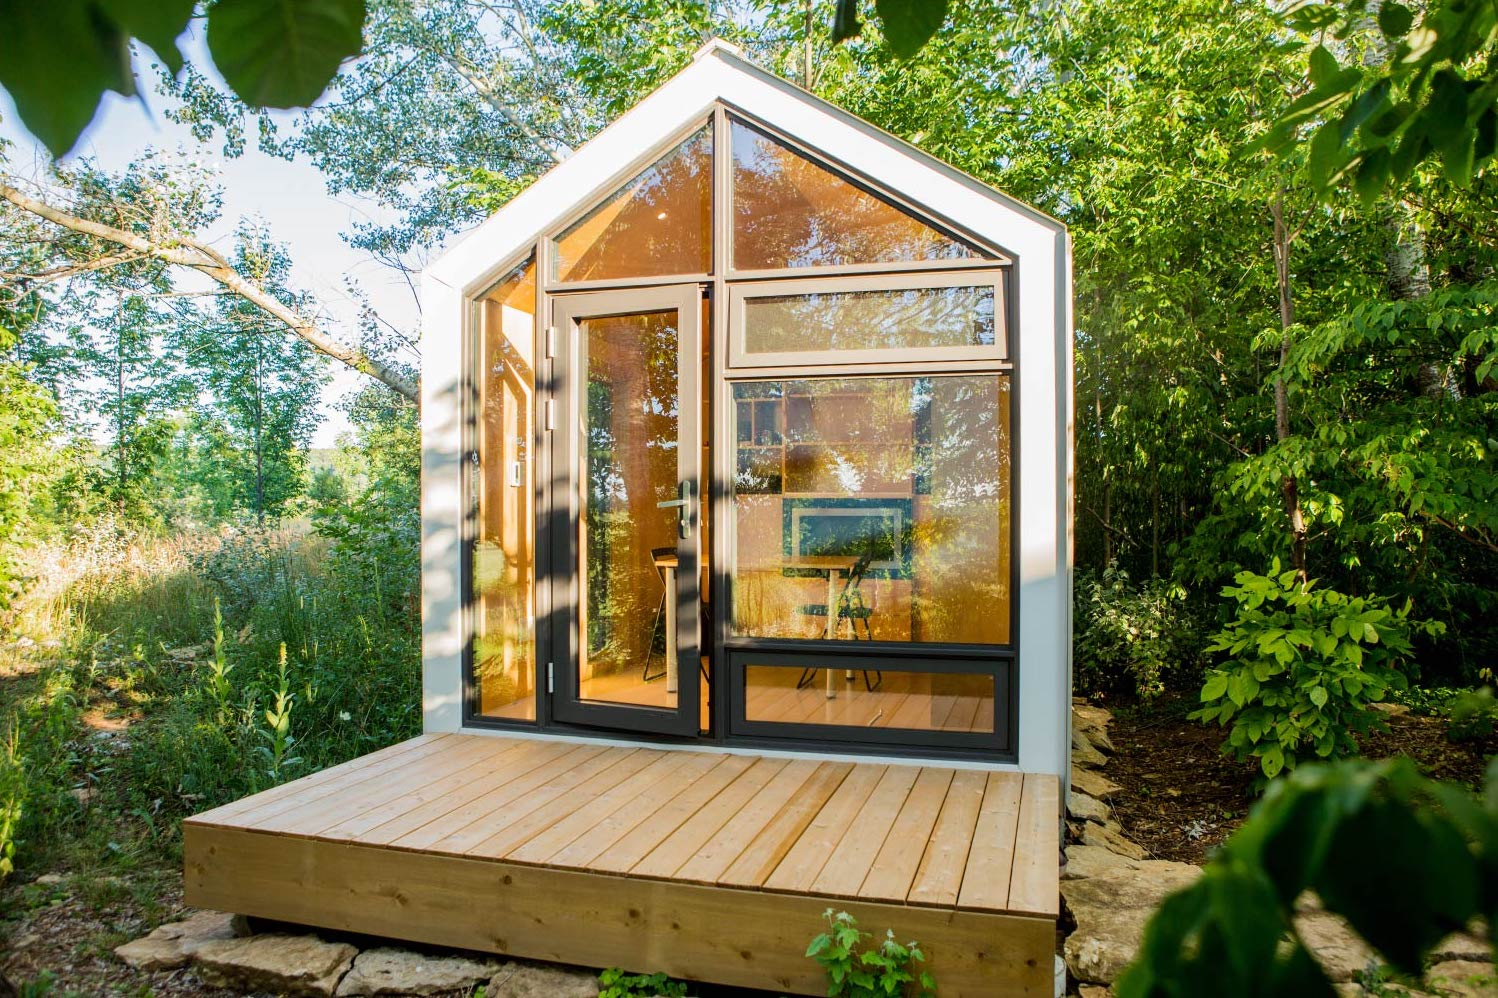 A tiny home viewed from above, with a wooden interior, glass wall, and black exterior on display.